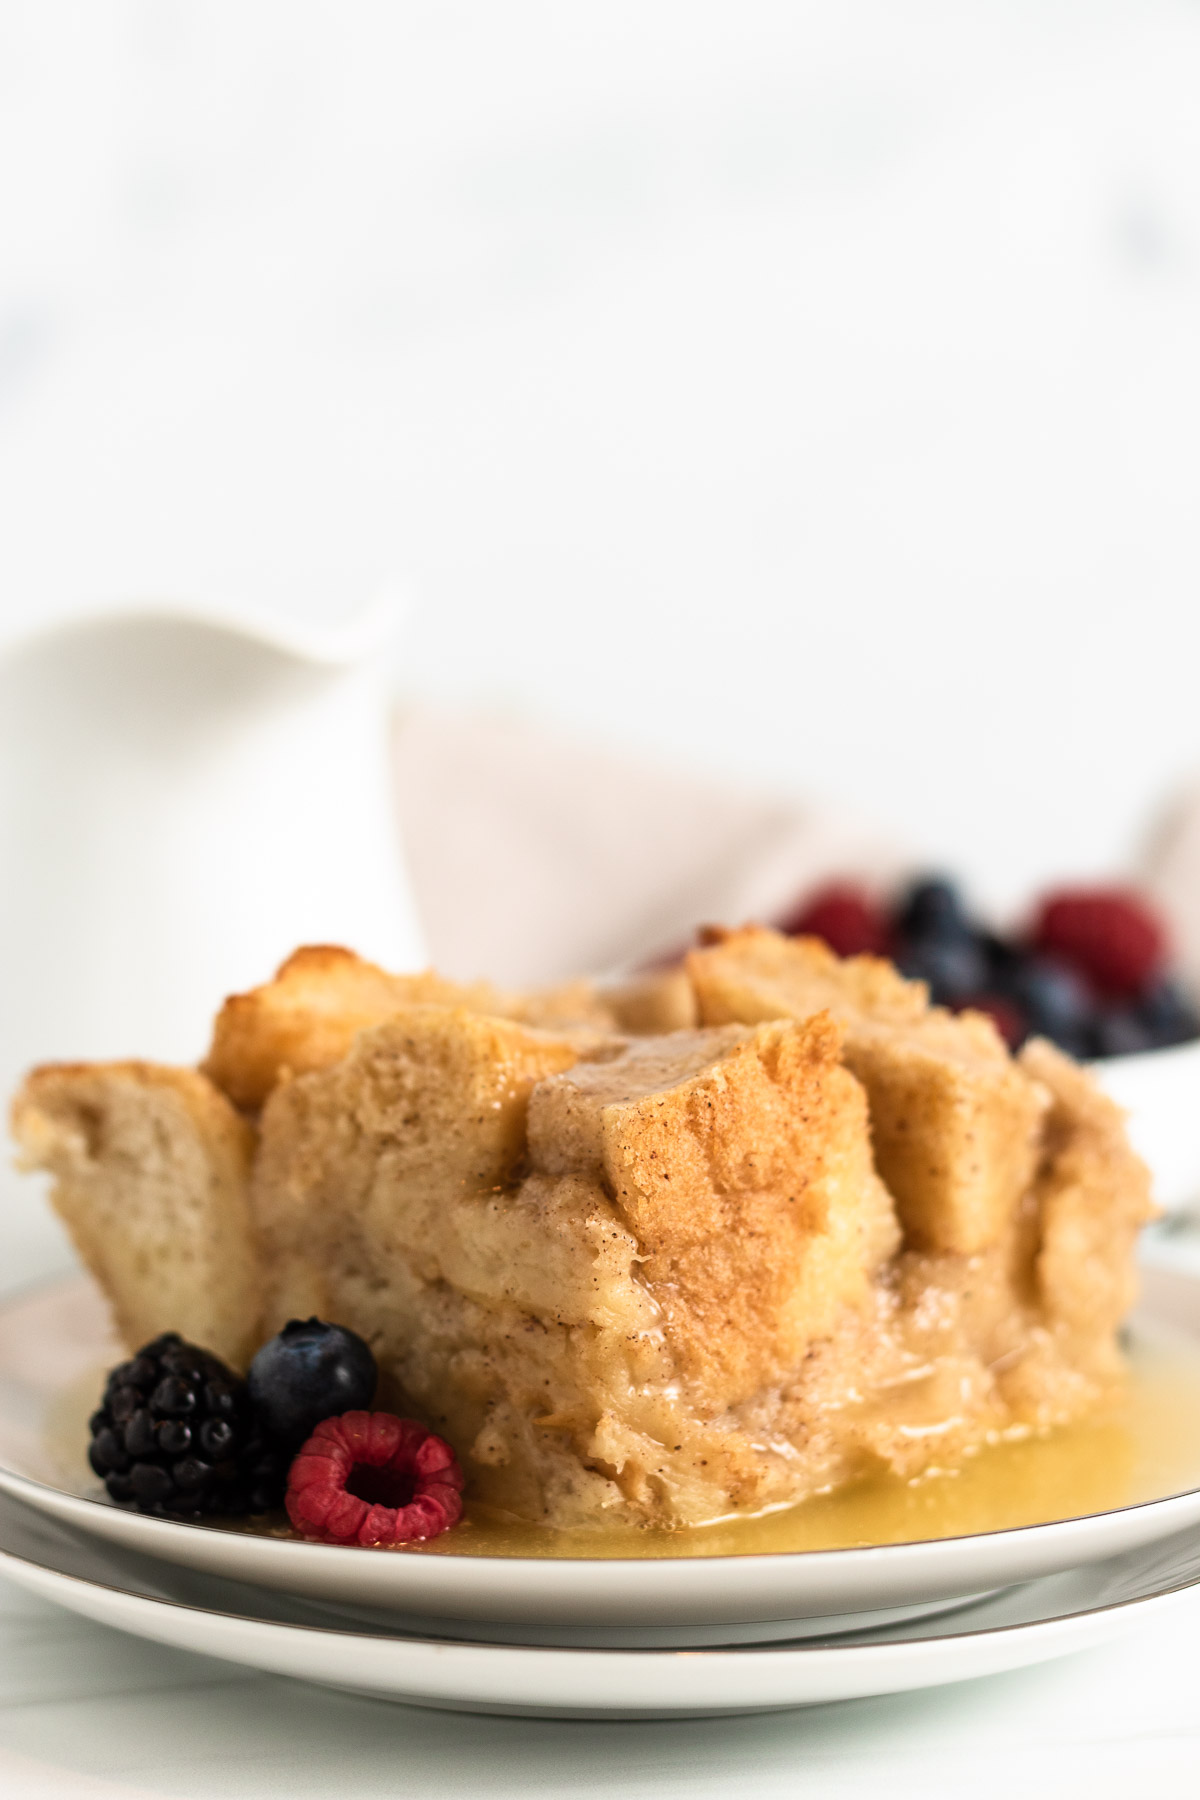 Bread pudding on a plate.